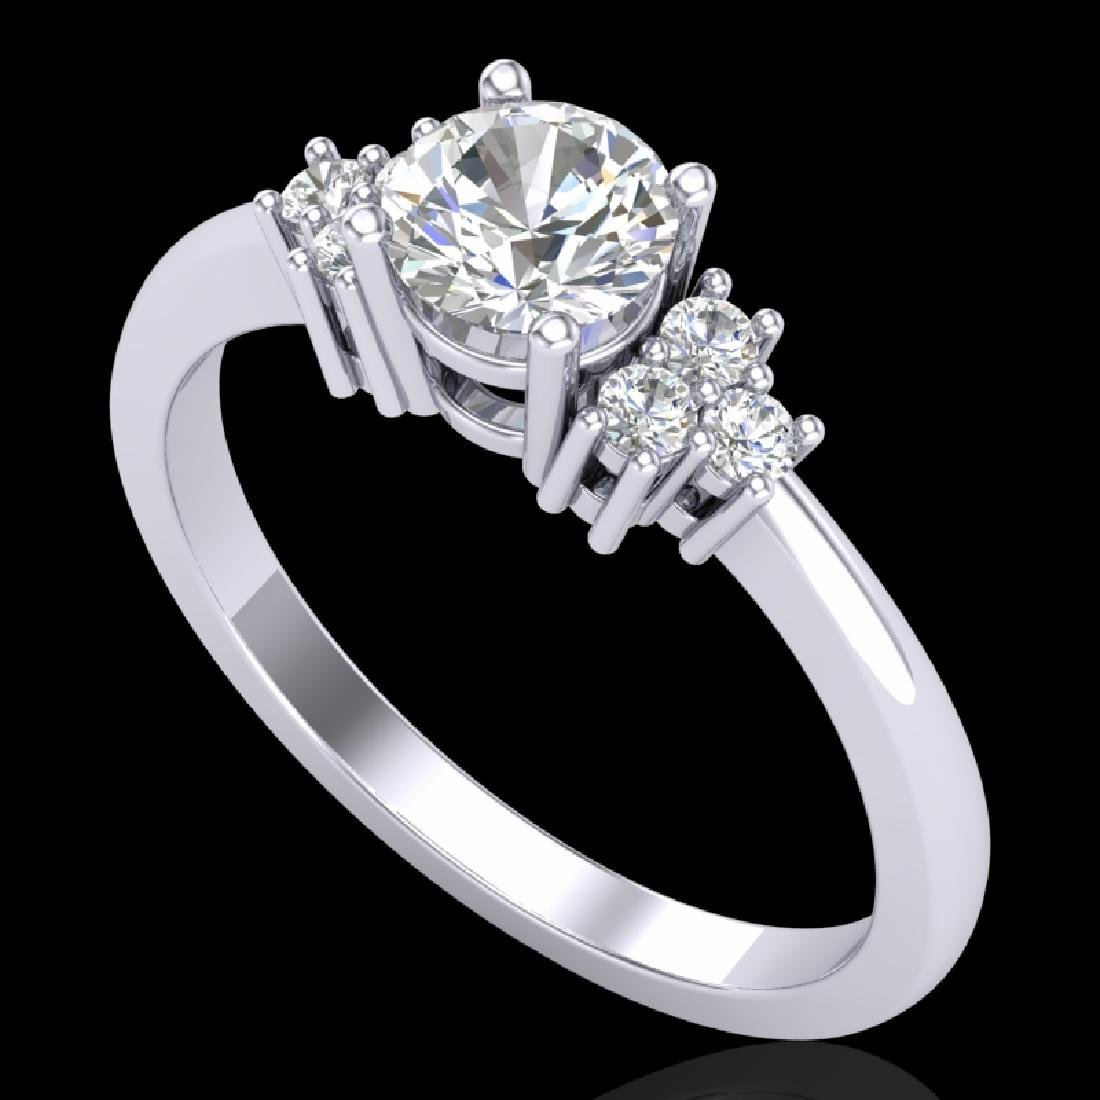 0.75 CTW VS/SI Diamond Ring 18K White Gold